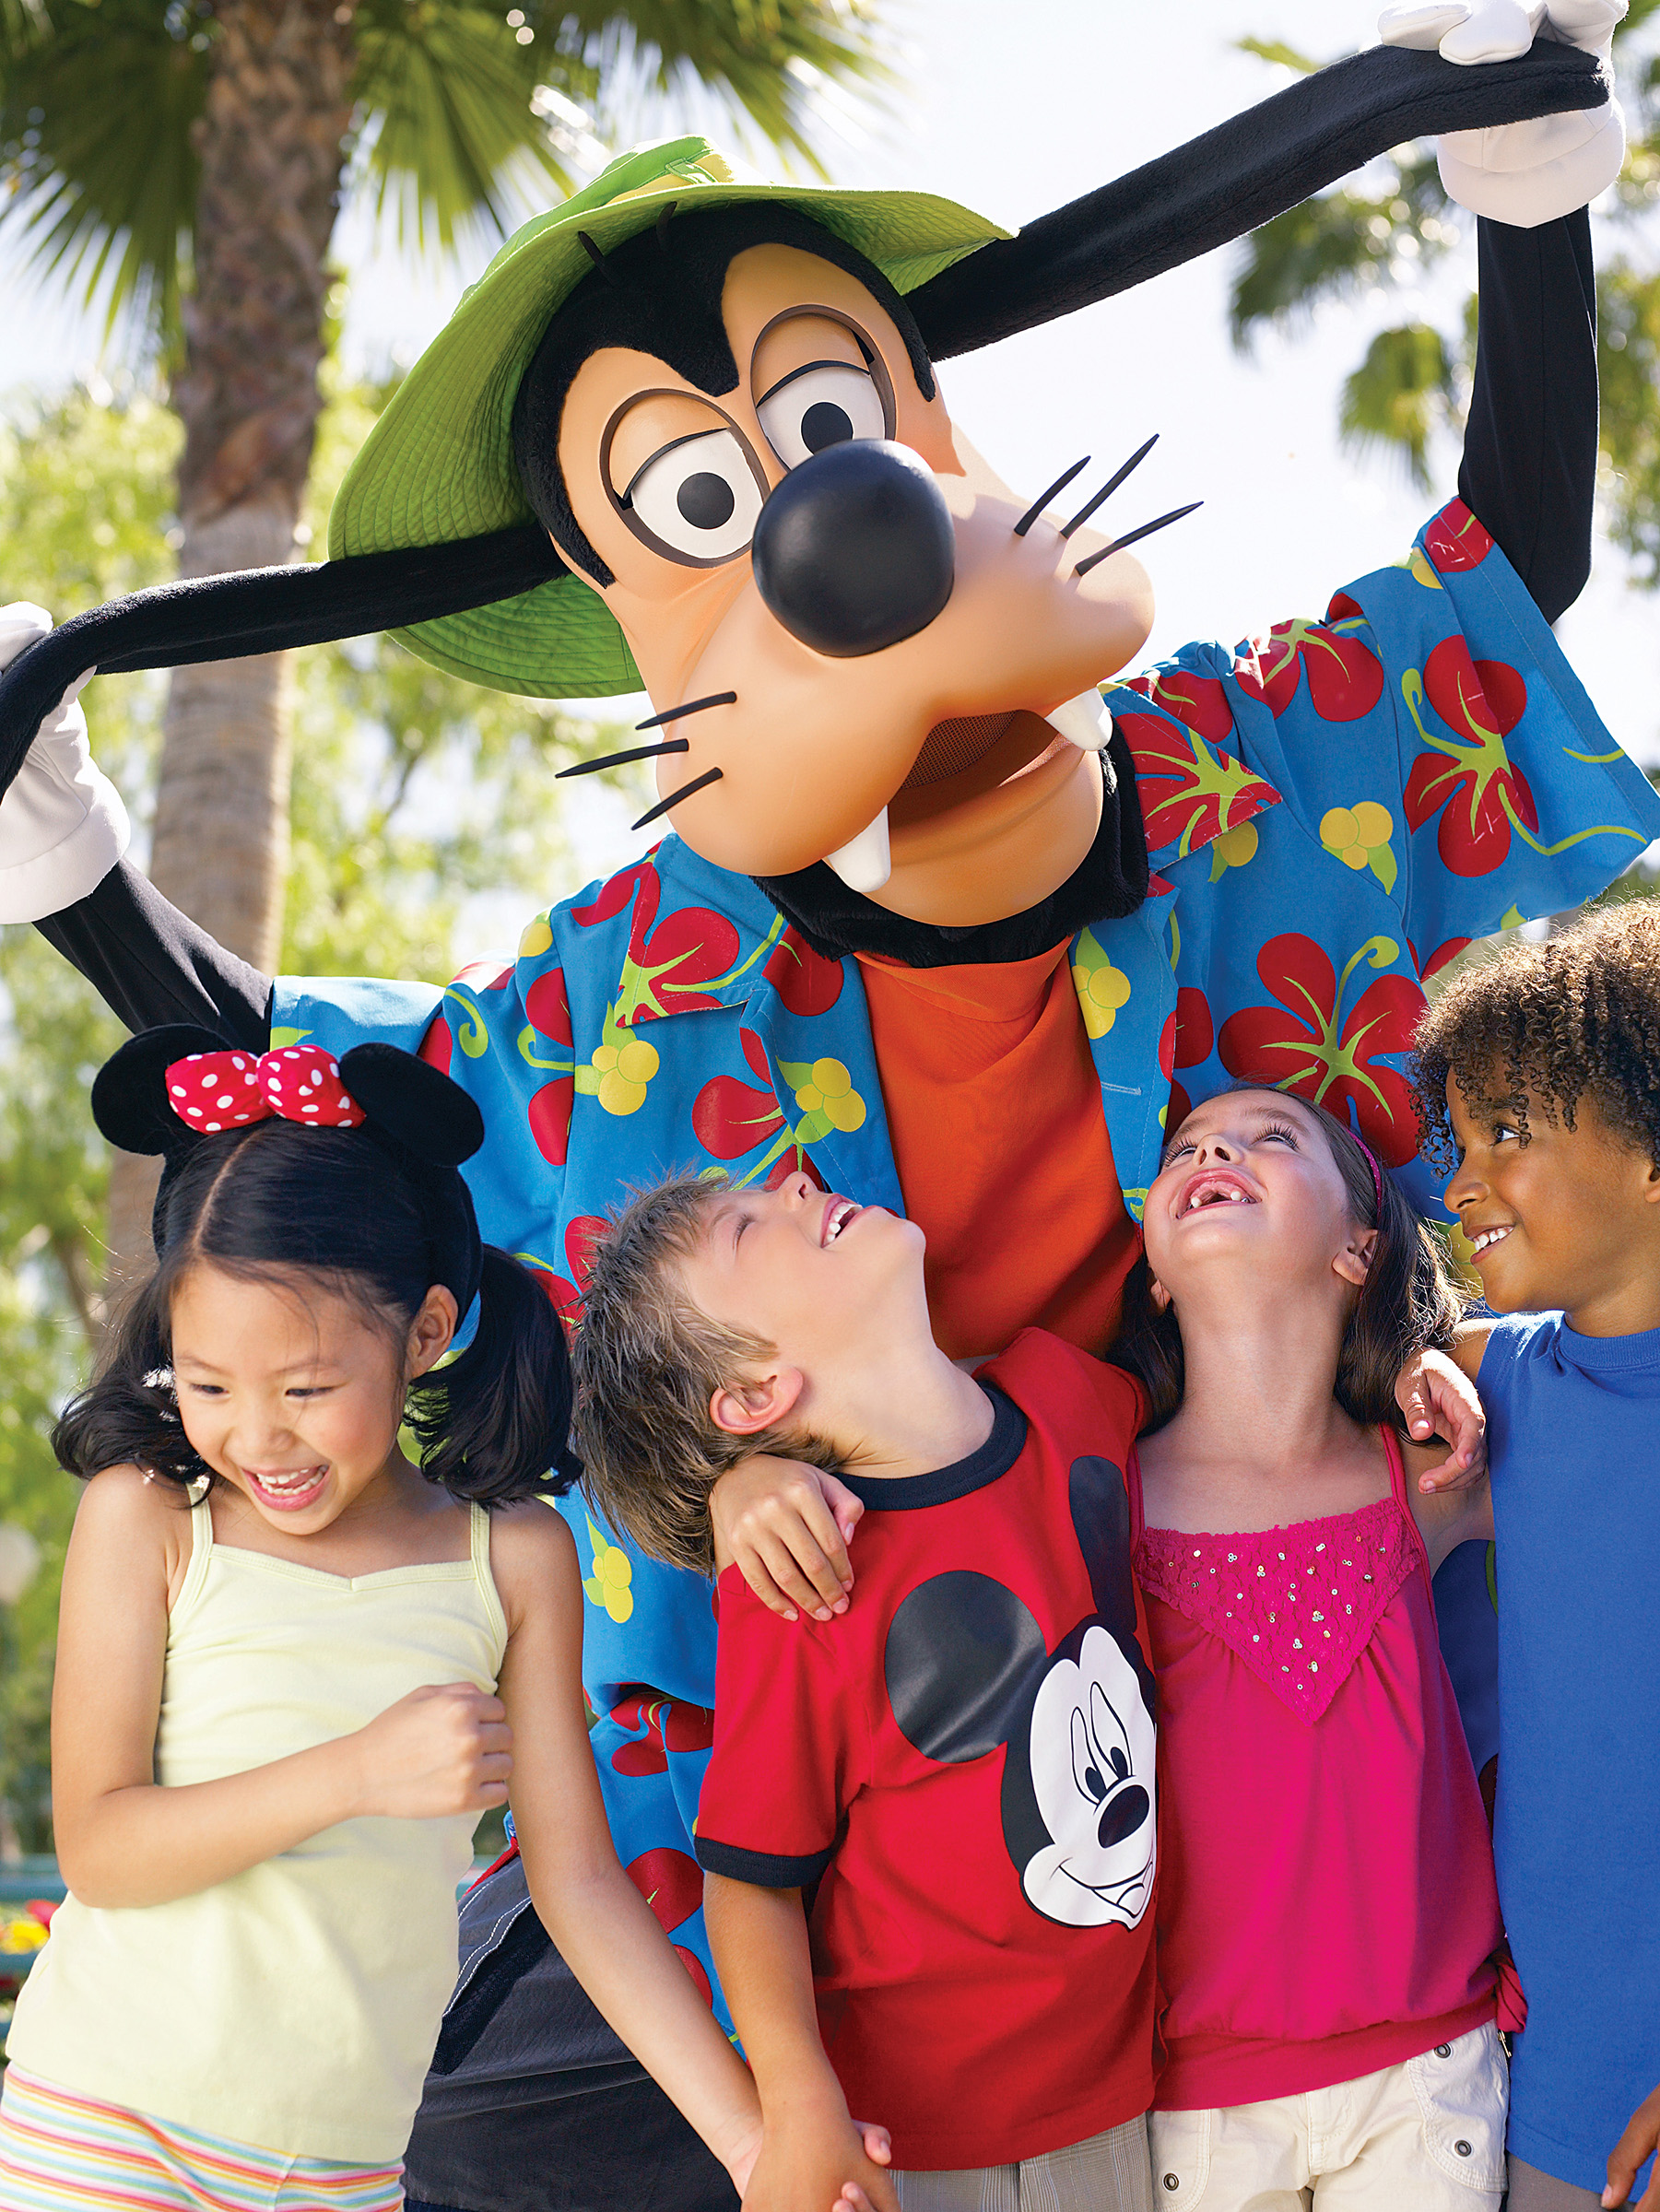 Families Can Getaway To Disneyland And To Other Family-friendly Destinations, With The Fun, Economical, Hassle-free Trip Planning Available With Get Away Today. Photo (c) Disney.